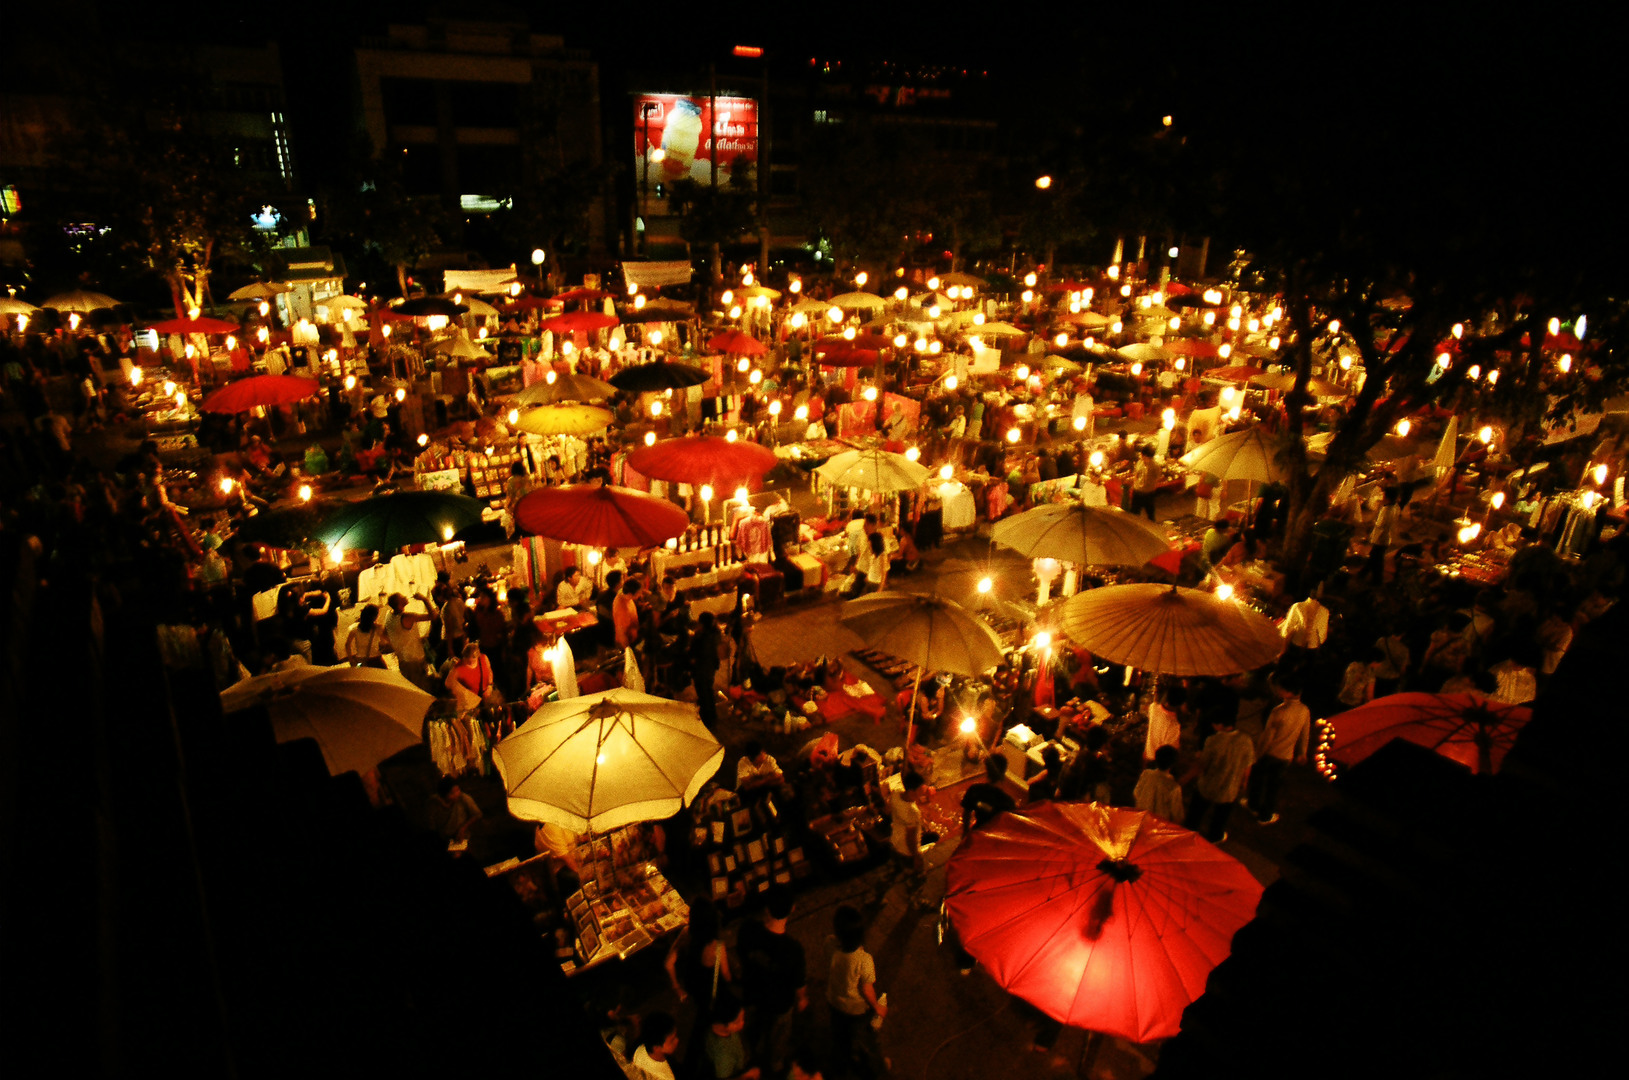 night_markets_worldwide_303415